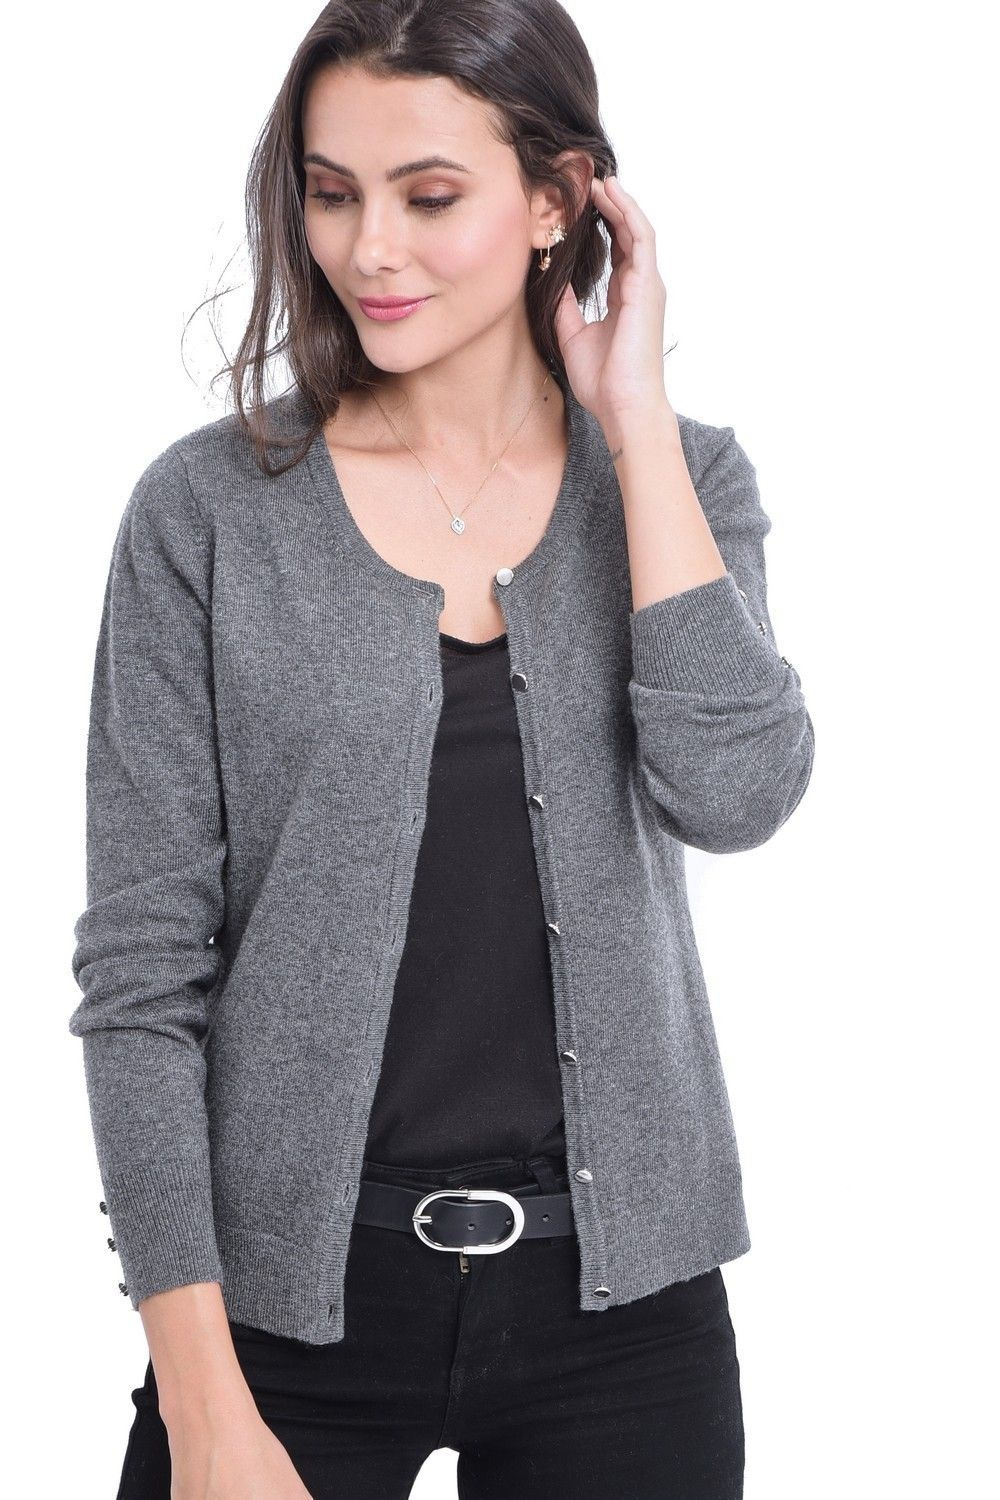 C&JO Round Neck Cardigan with Silver Buttons in Grey